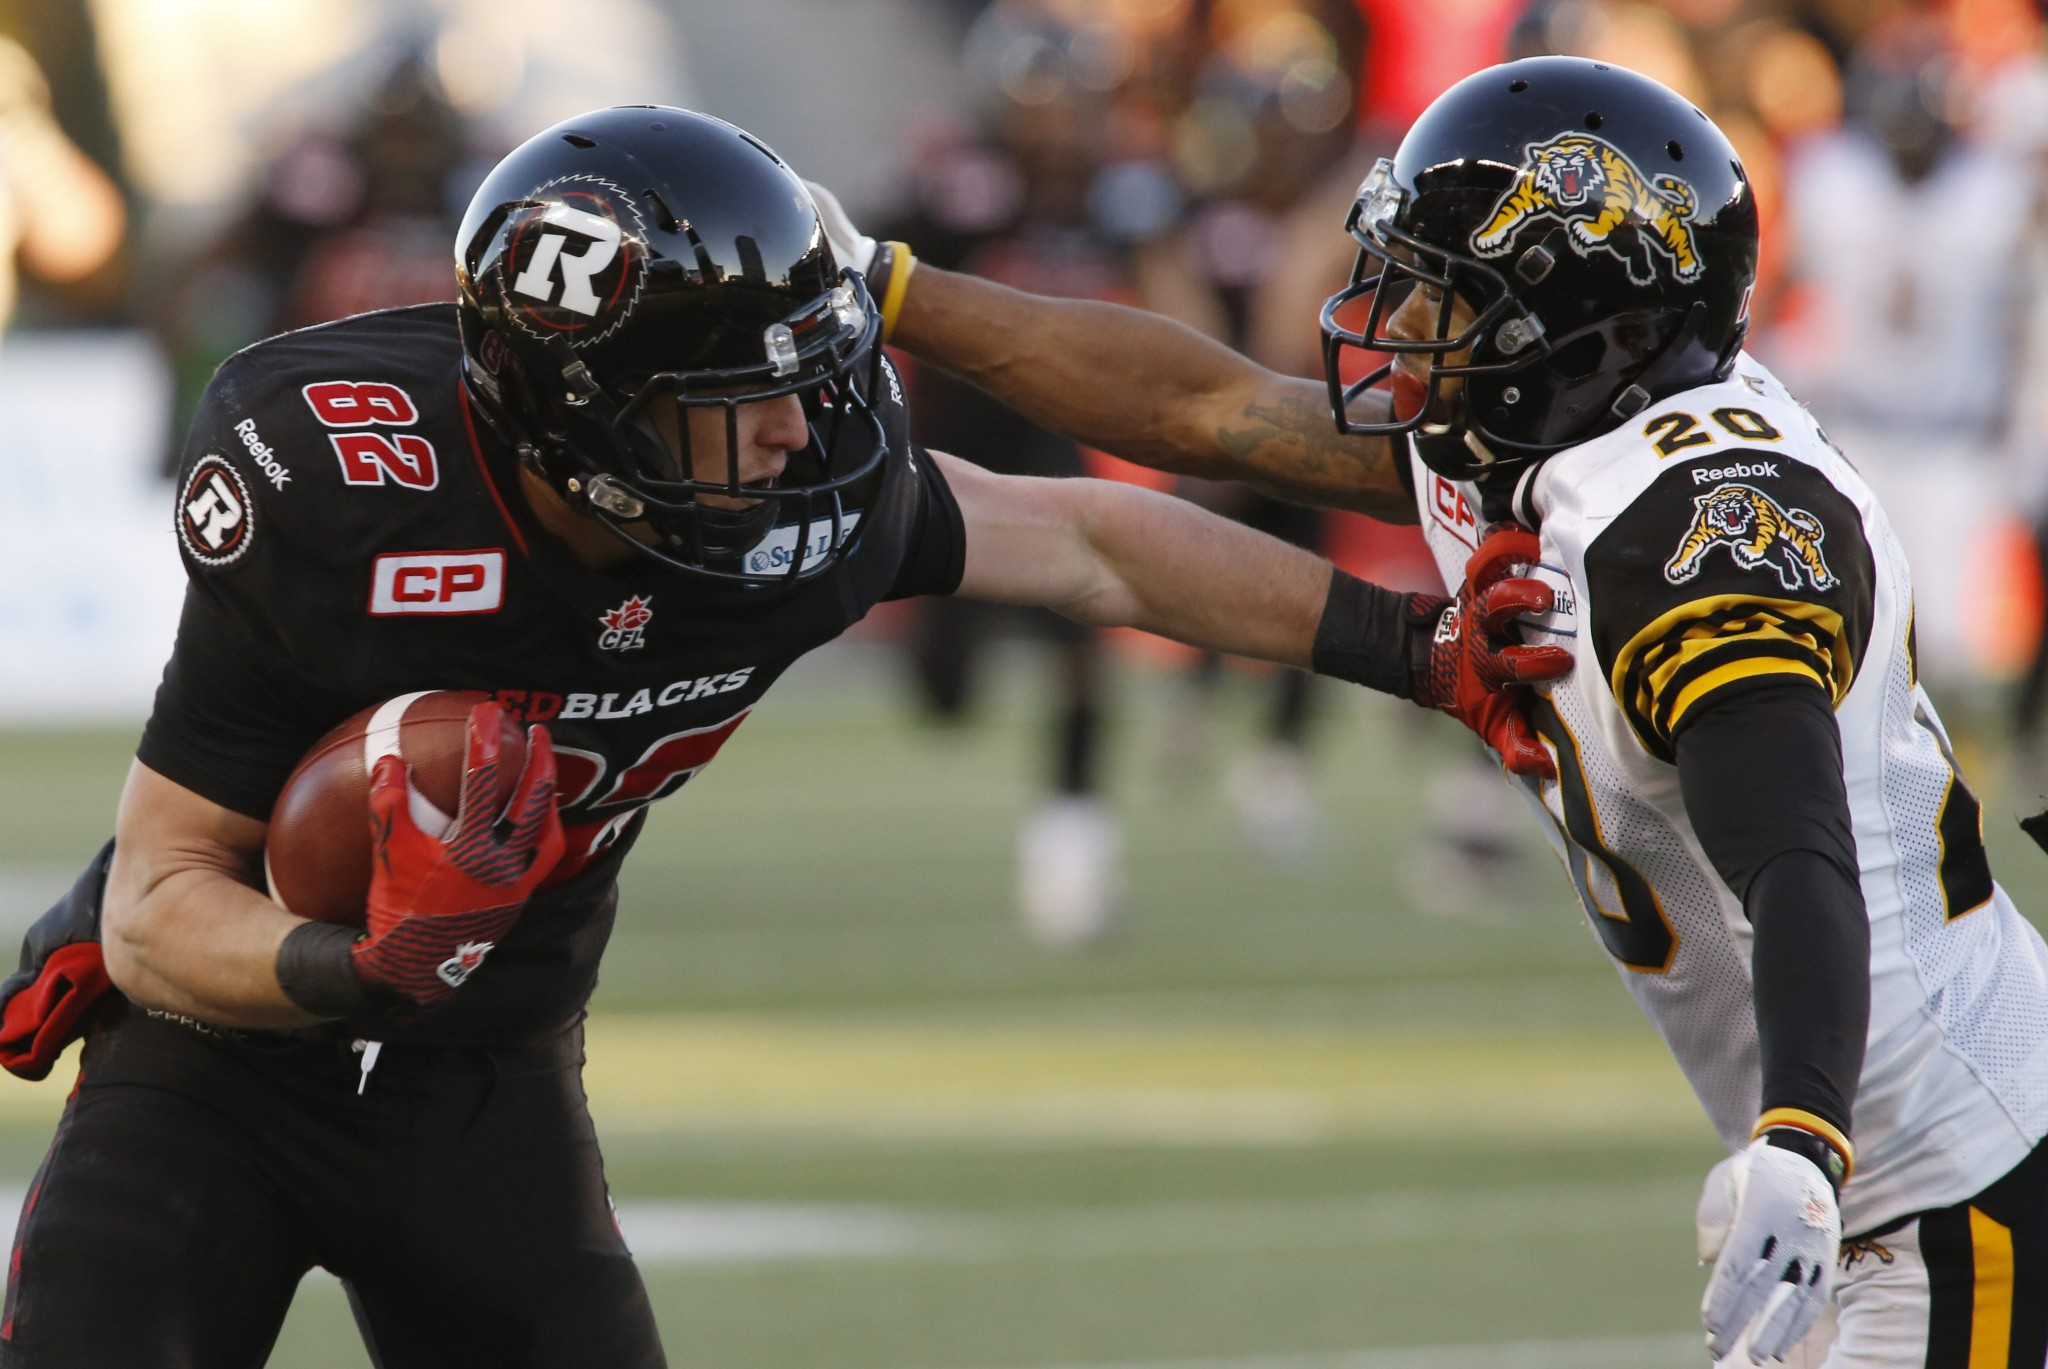 The Ottawa Redblacks Greg Ellingson fends off the Hamilton Tiger-Cats Emanuel Davis as he runs for the game winning touchdown during fourth quarter eastern final CFL action in Ottawa on Saturday, November 22, 2015. (CFL PHOTO - Patrick Doyle)